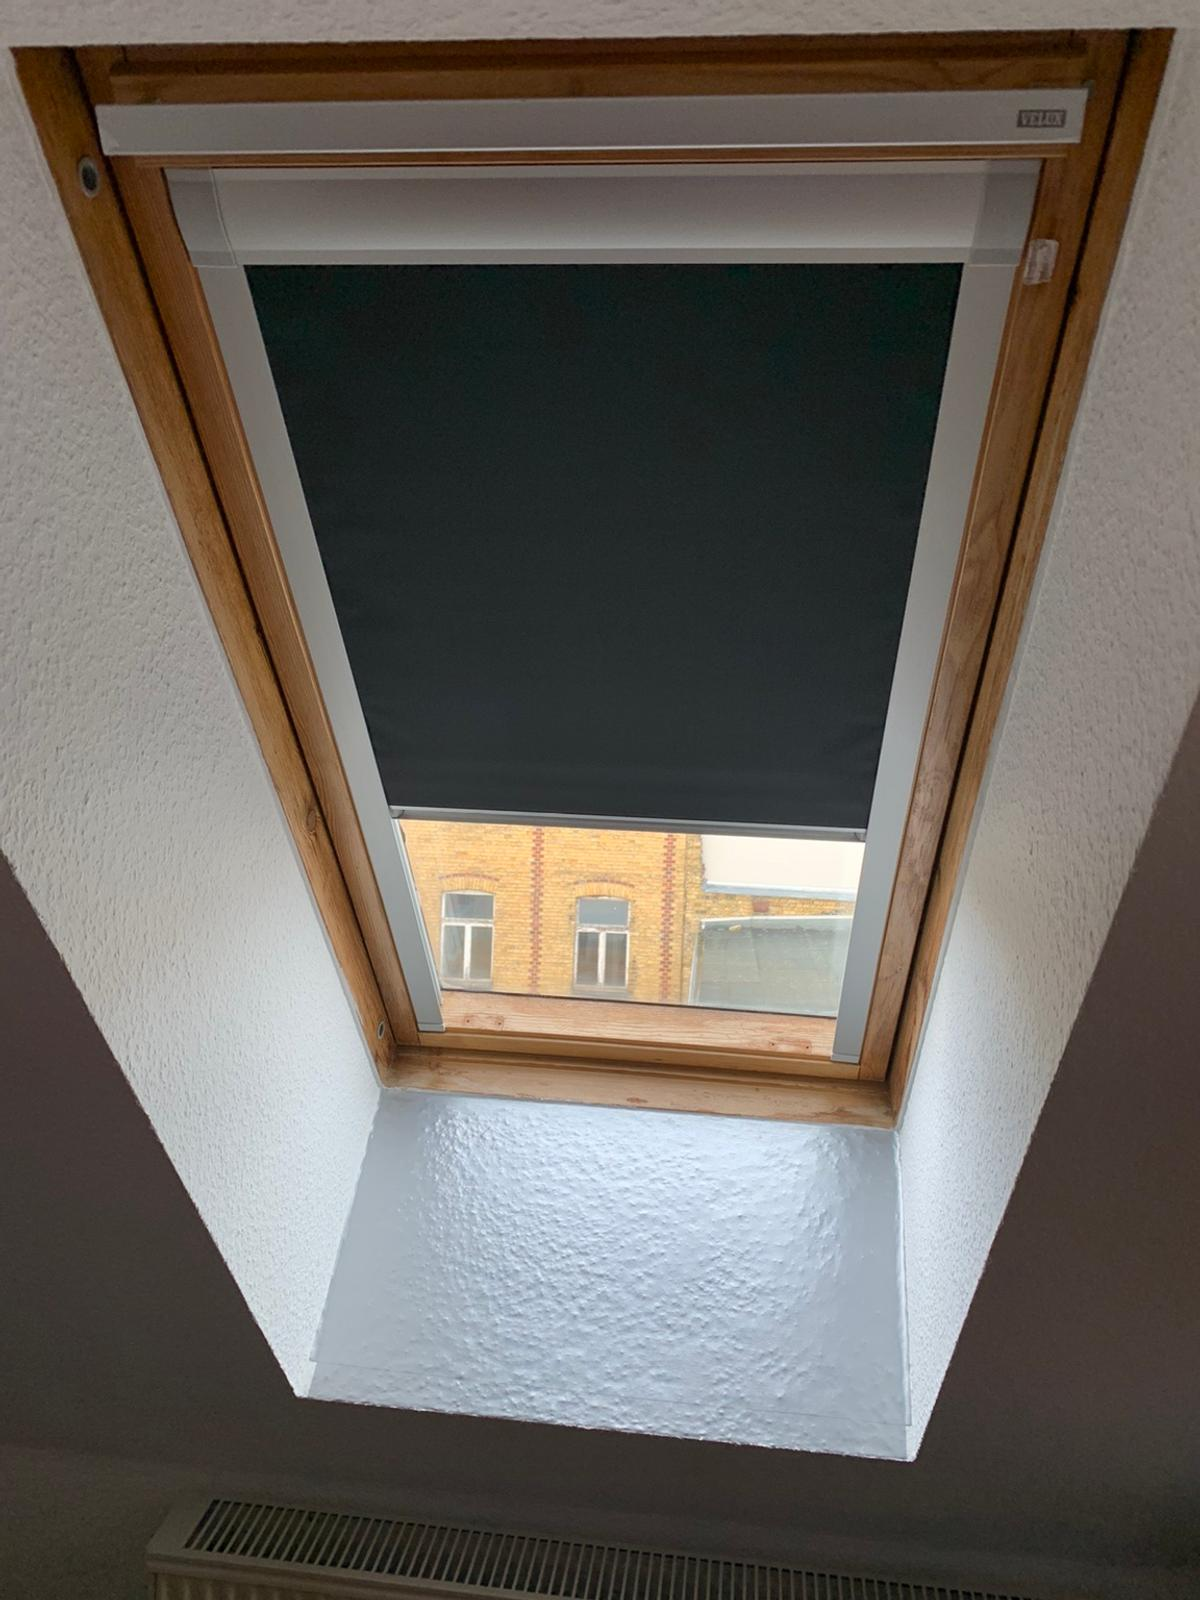 Velux Dachfenster Rollo In 06886 Wittenberg For 400 00 For Sale Shpock